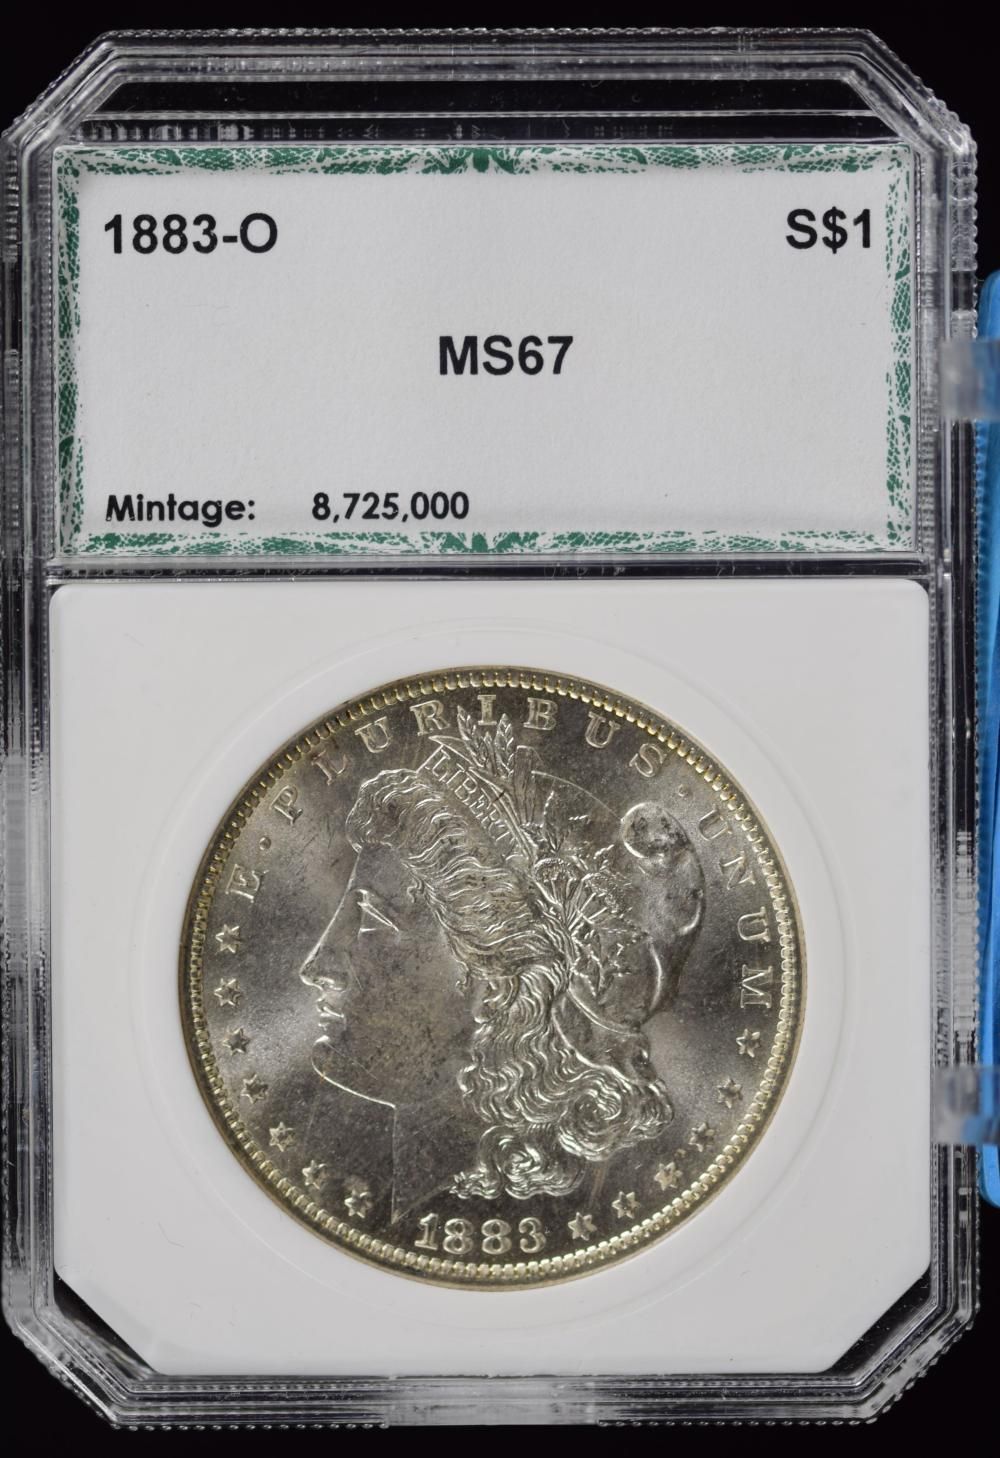 1883-O Morgan Dollar PCI MS67